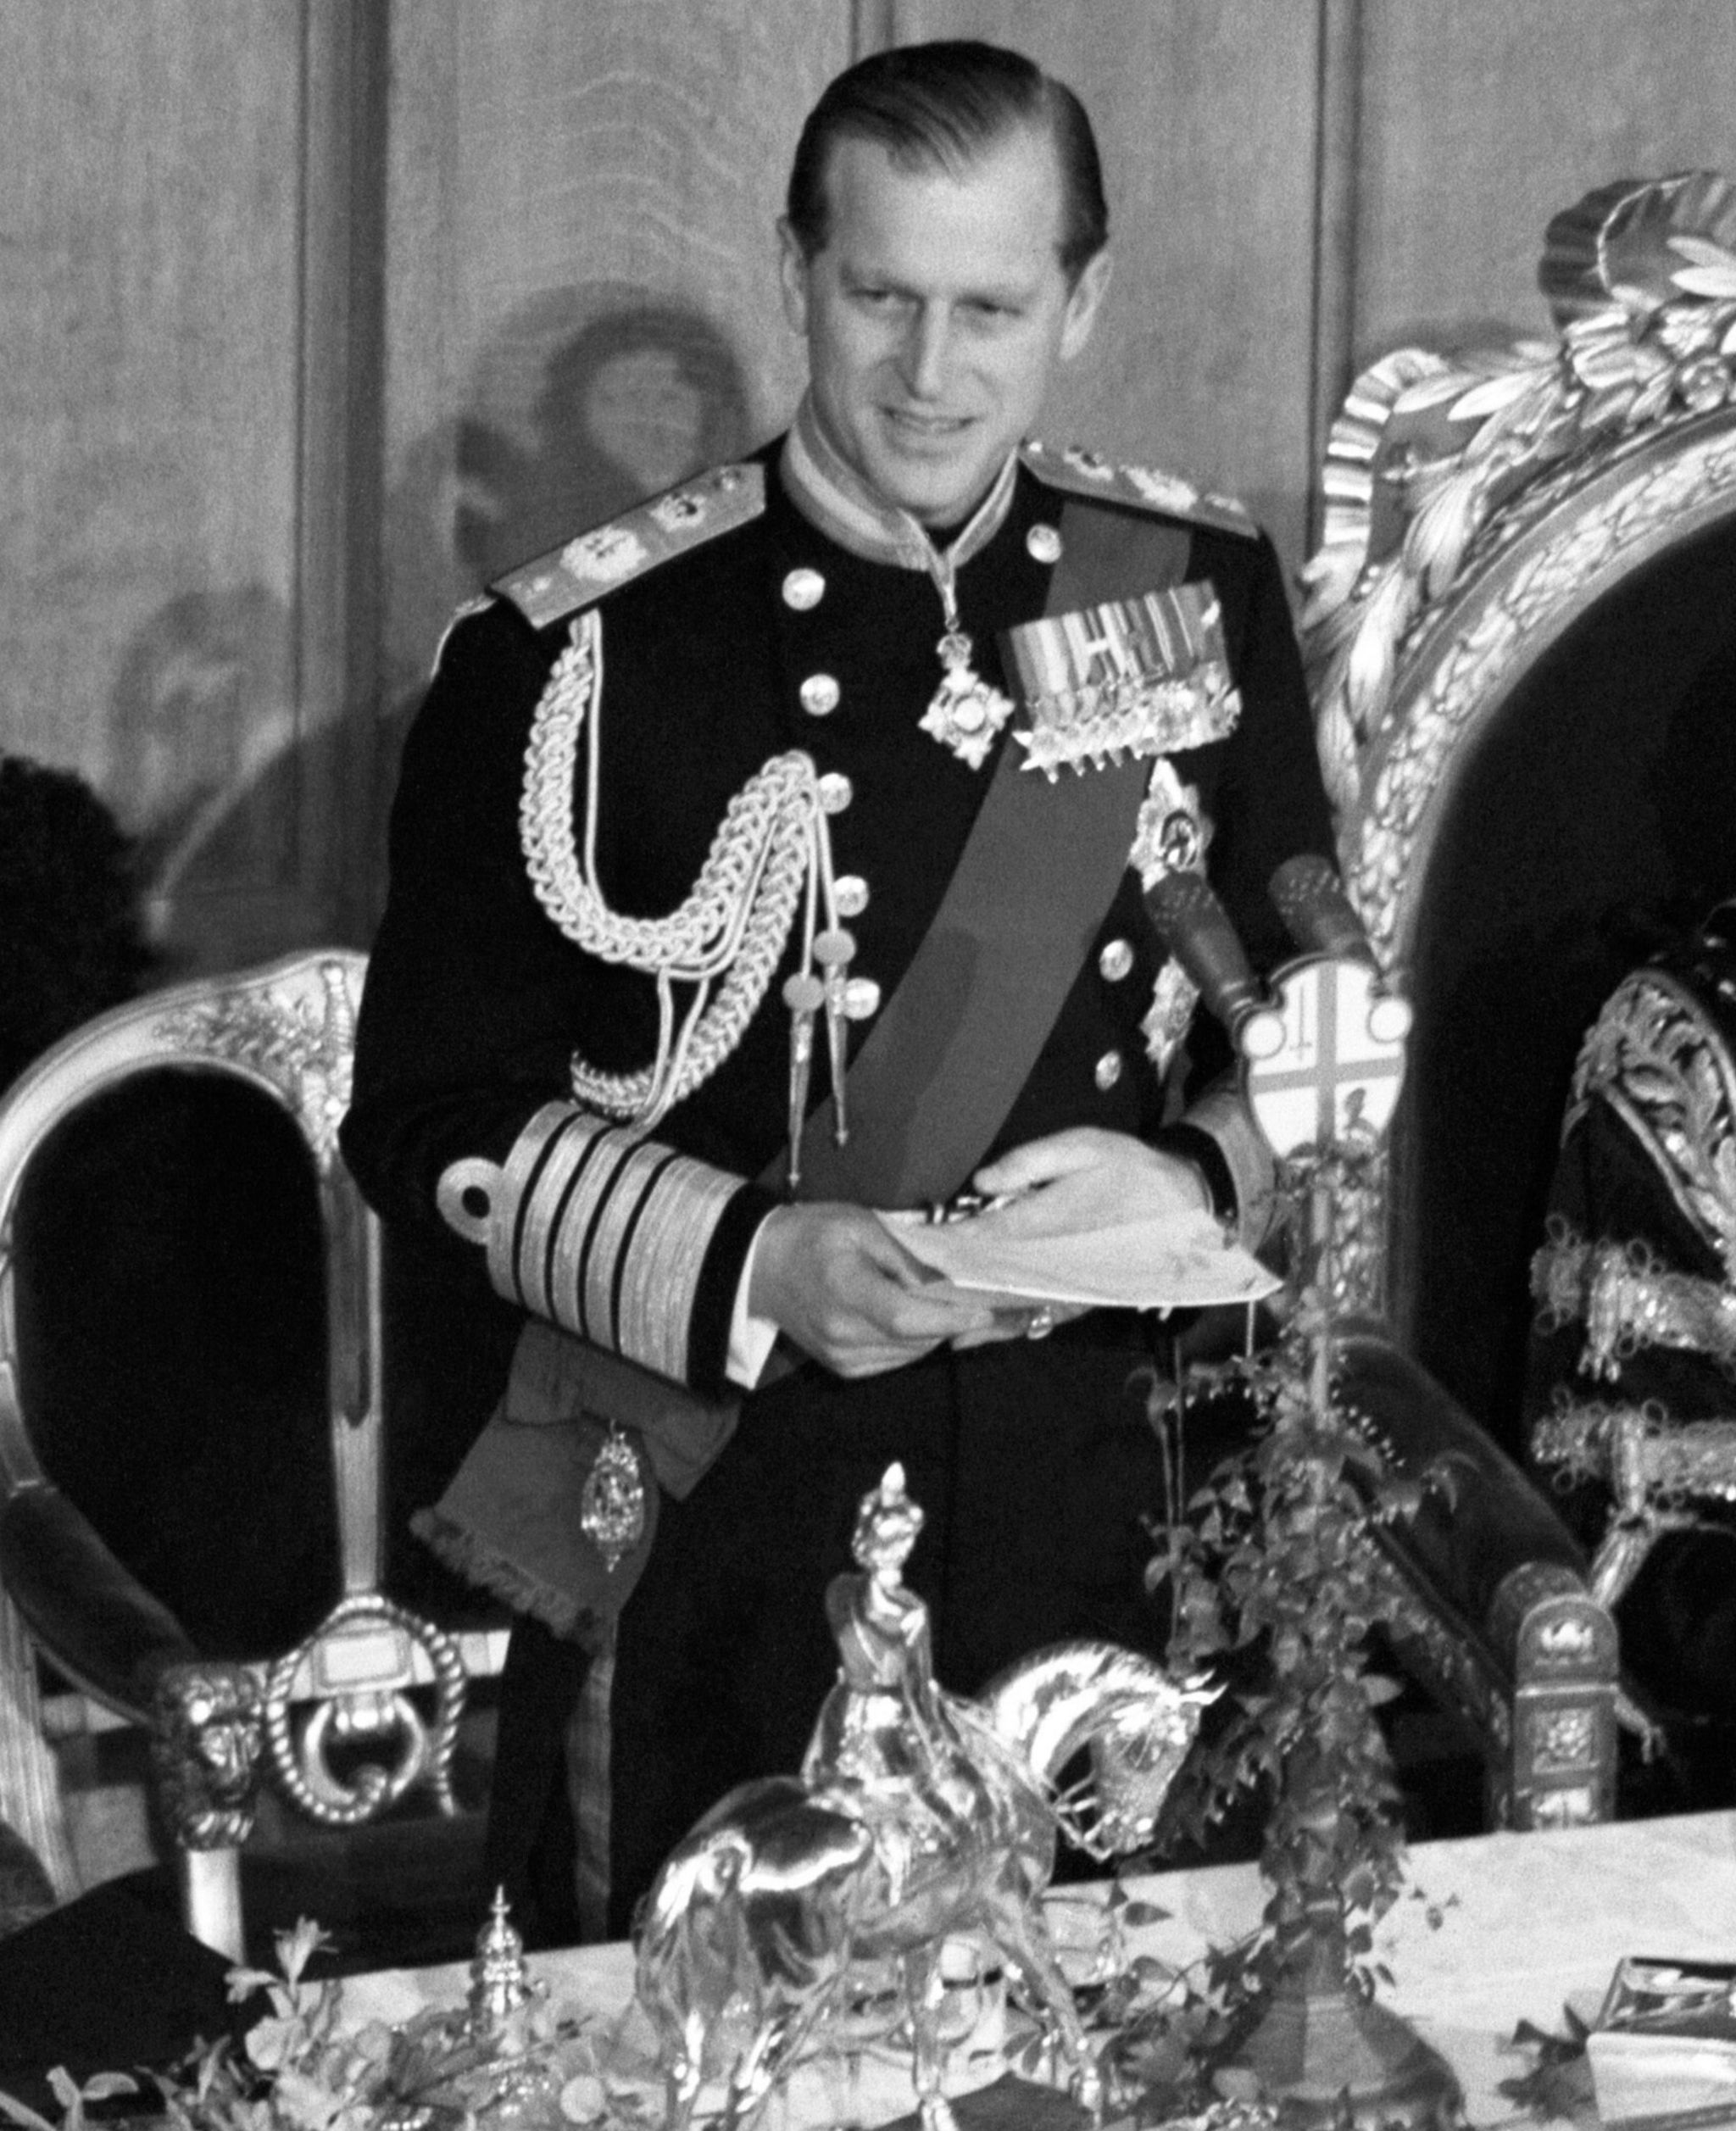 Prince Philip gives a speech at a luncheon